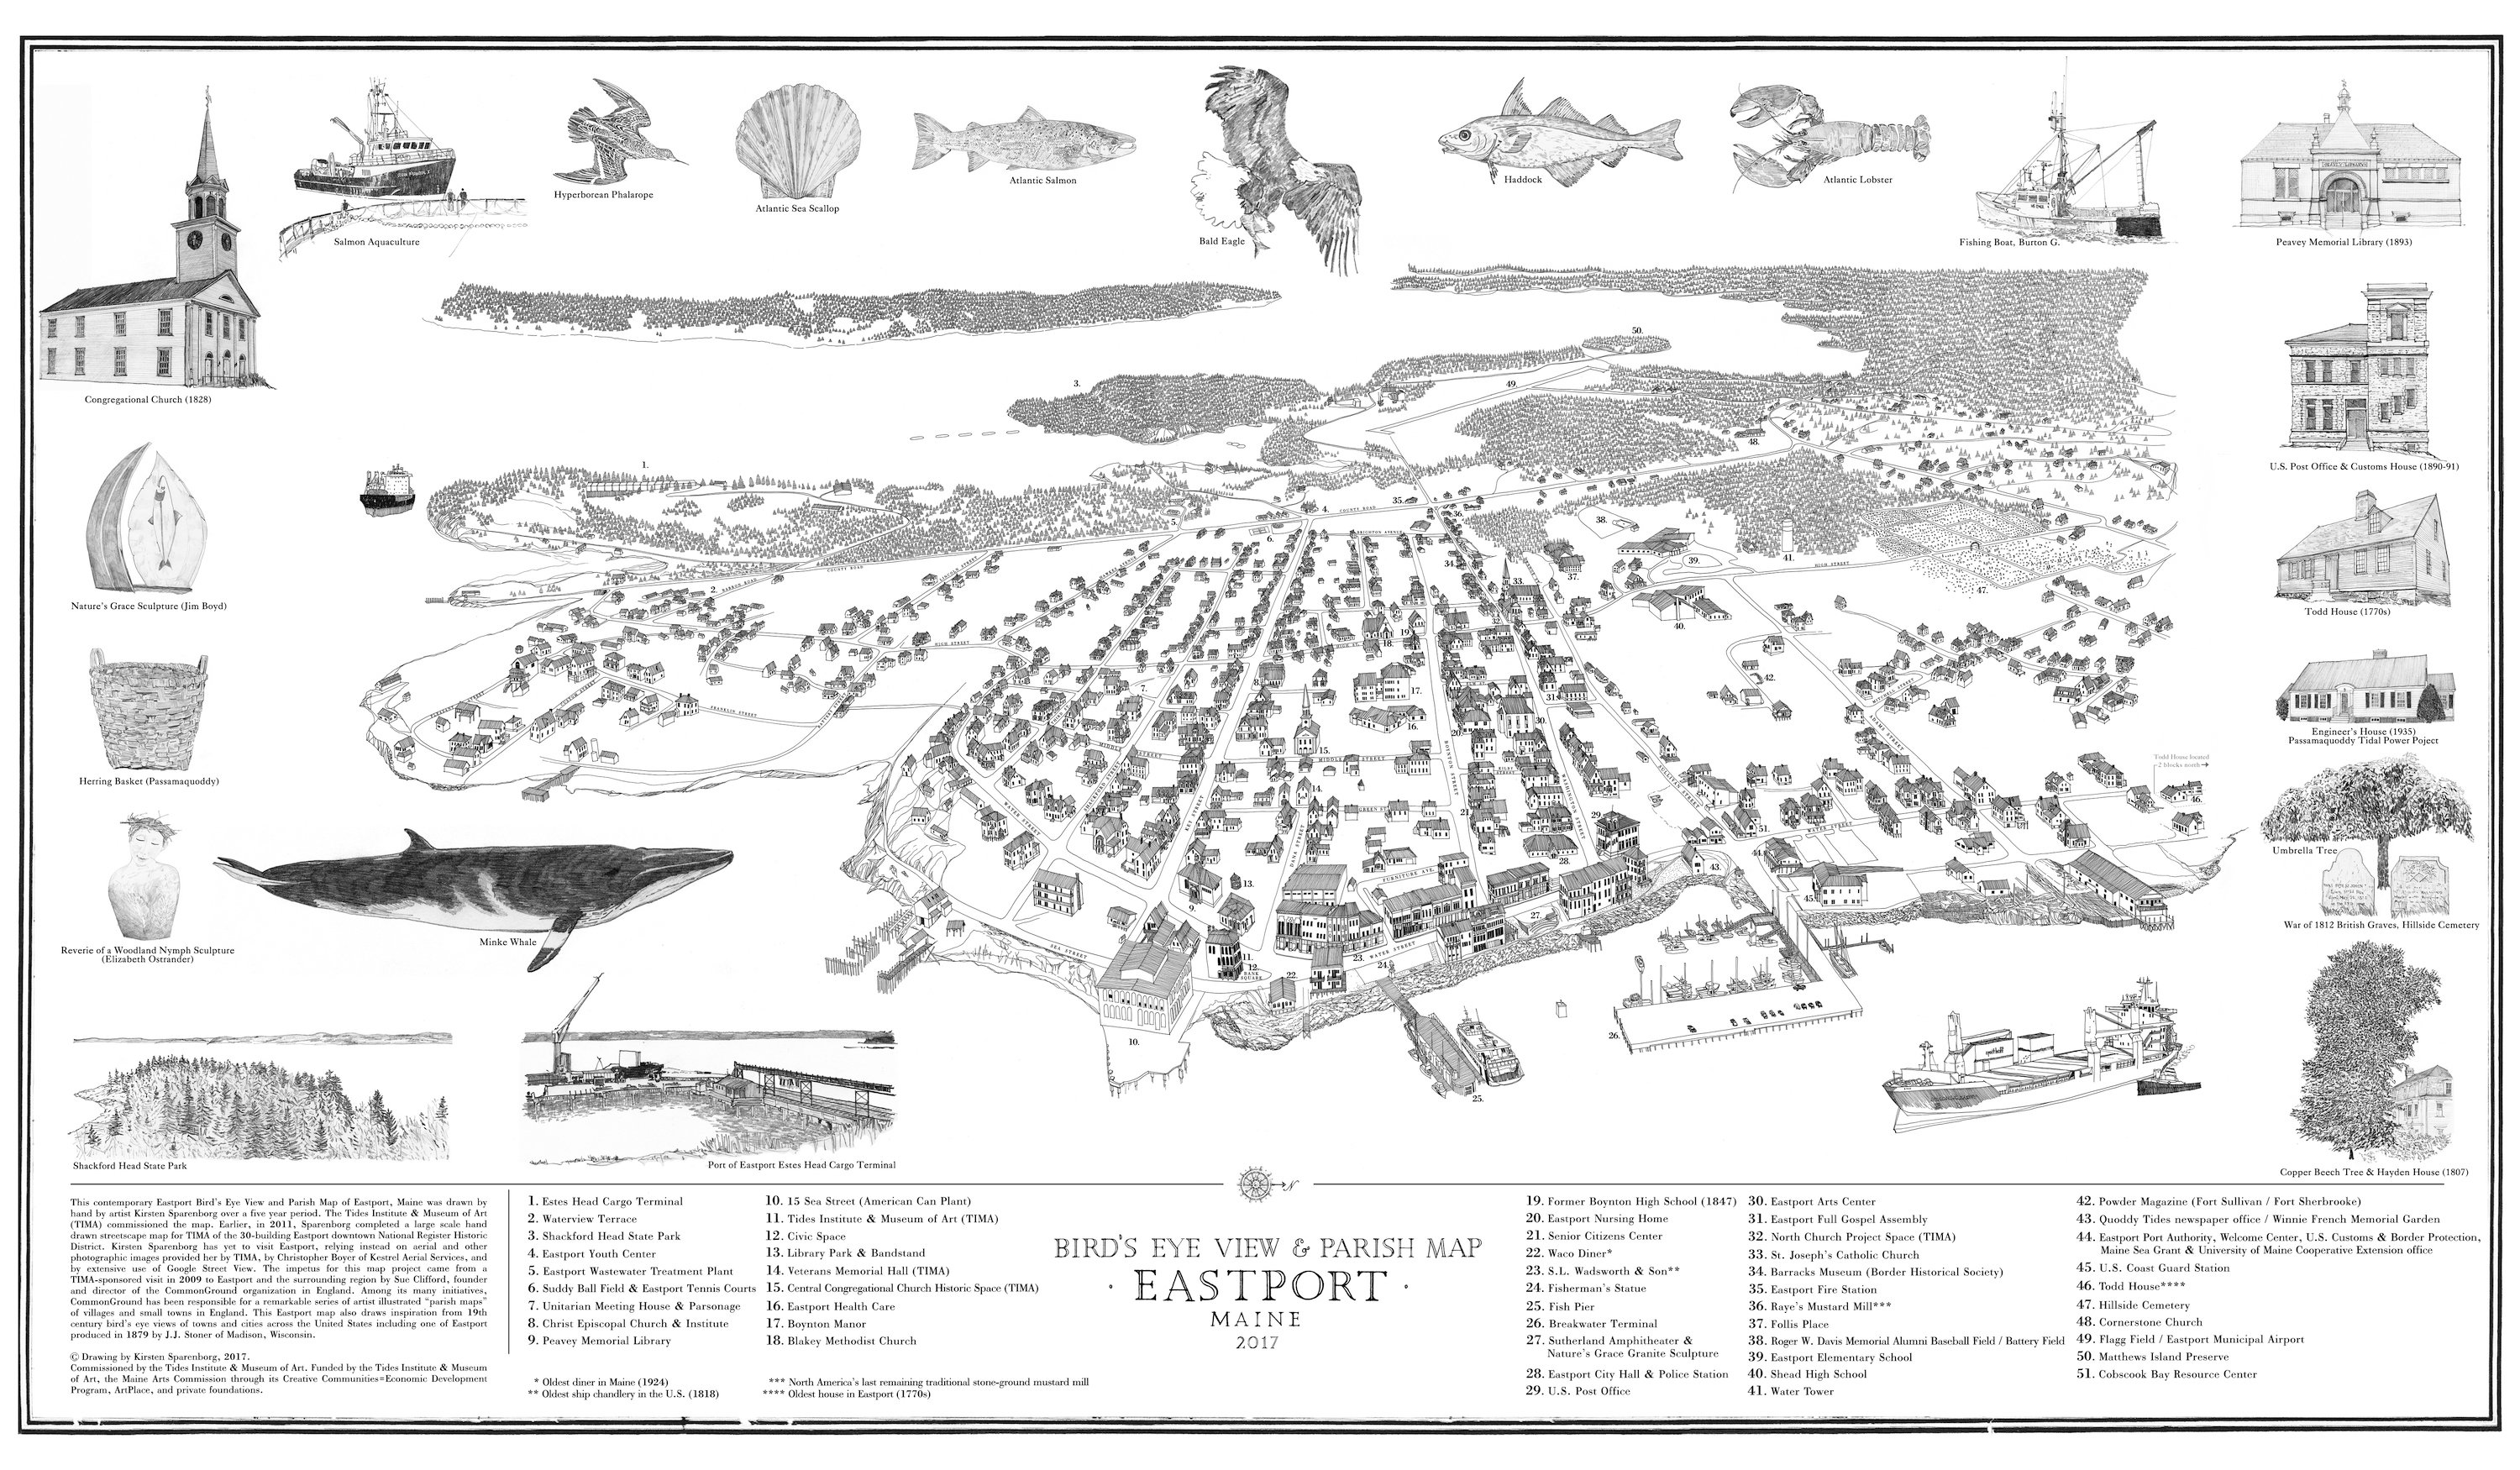 Bird\'s Eye View & Parish Map – Tides Institute & Museum of Art